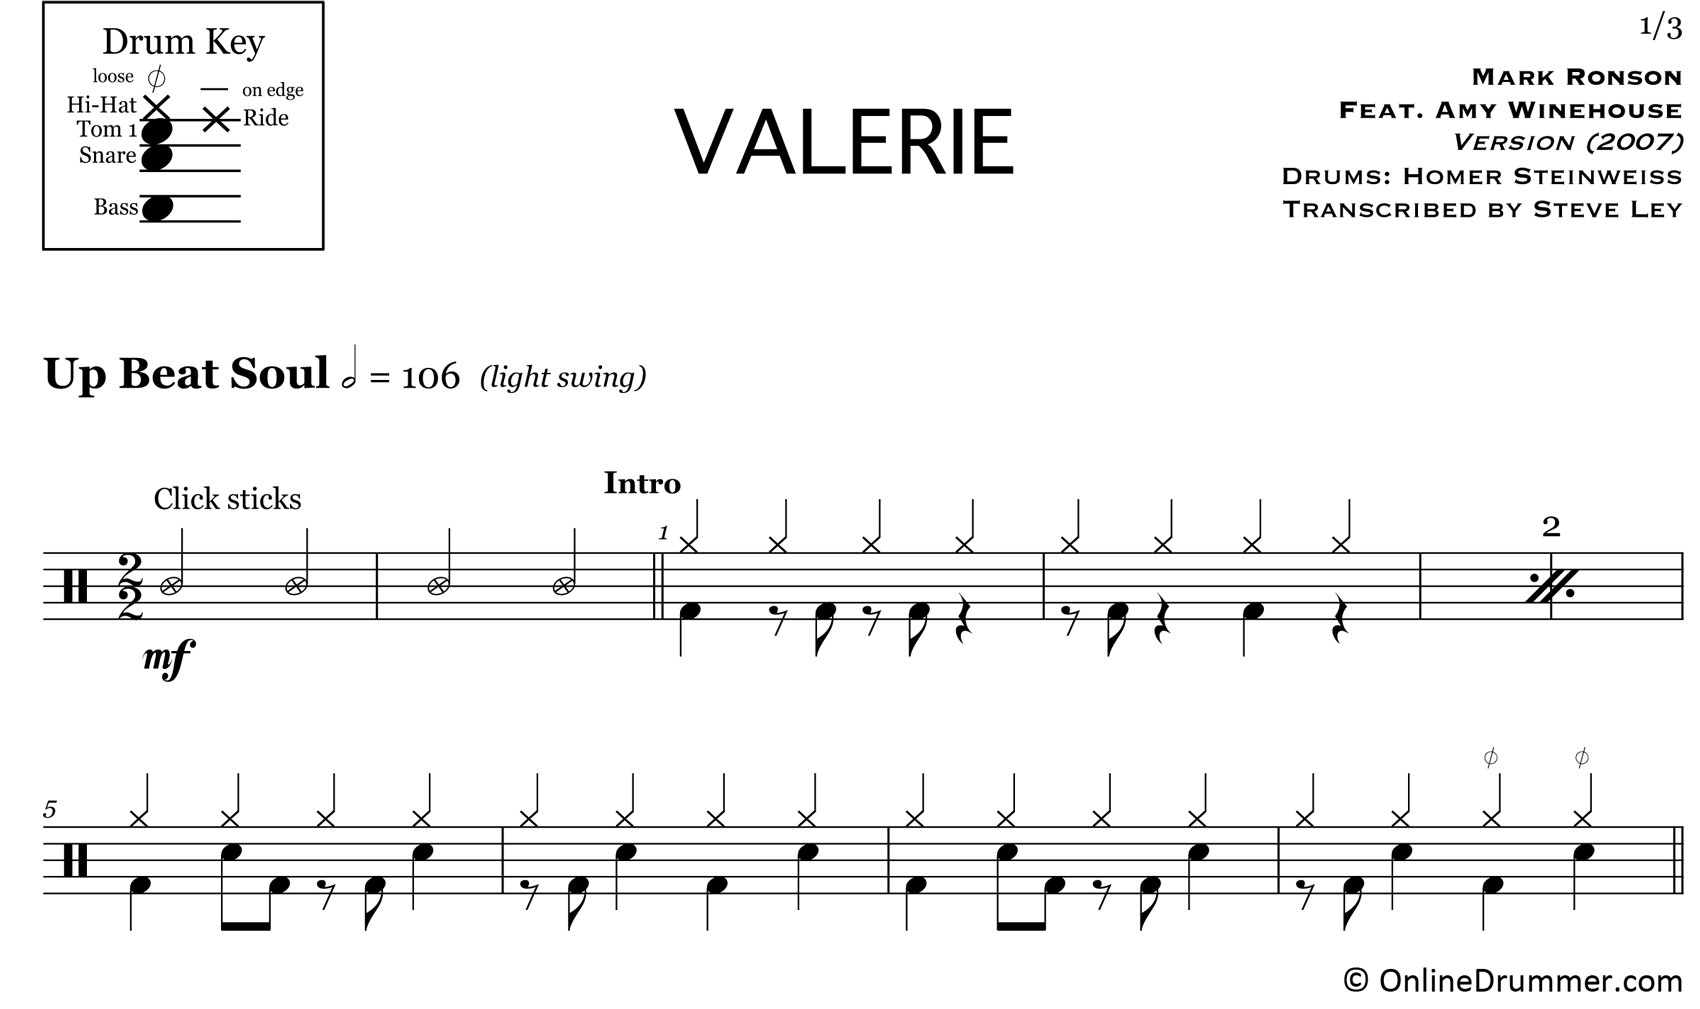 Valerie - Mark Ronson featuring Amy Winehouse - Drum Sheet Music